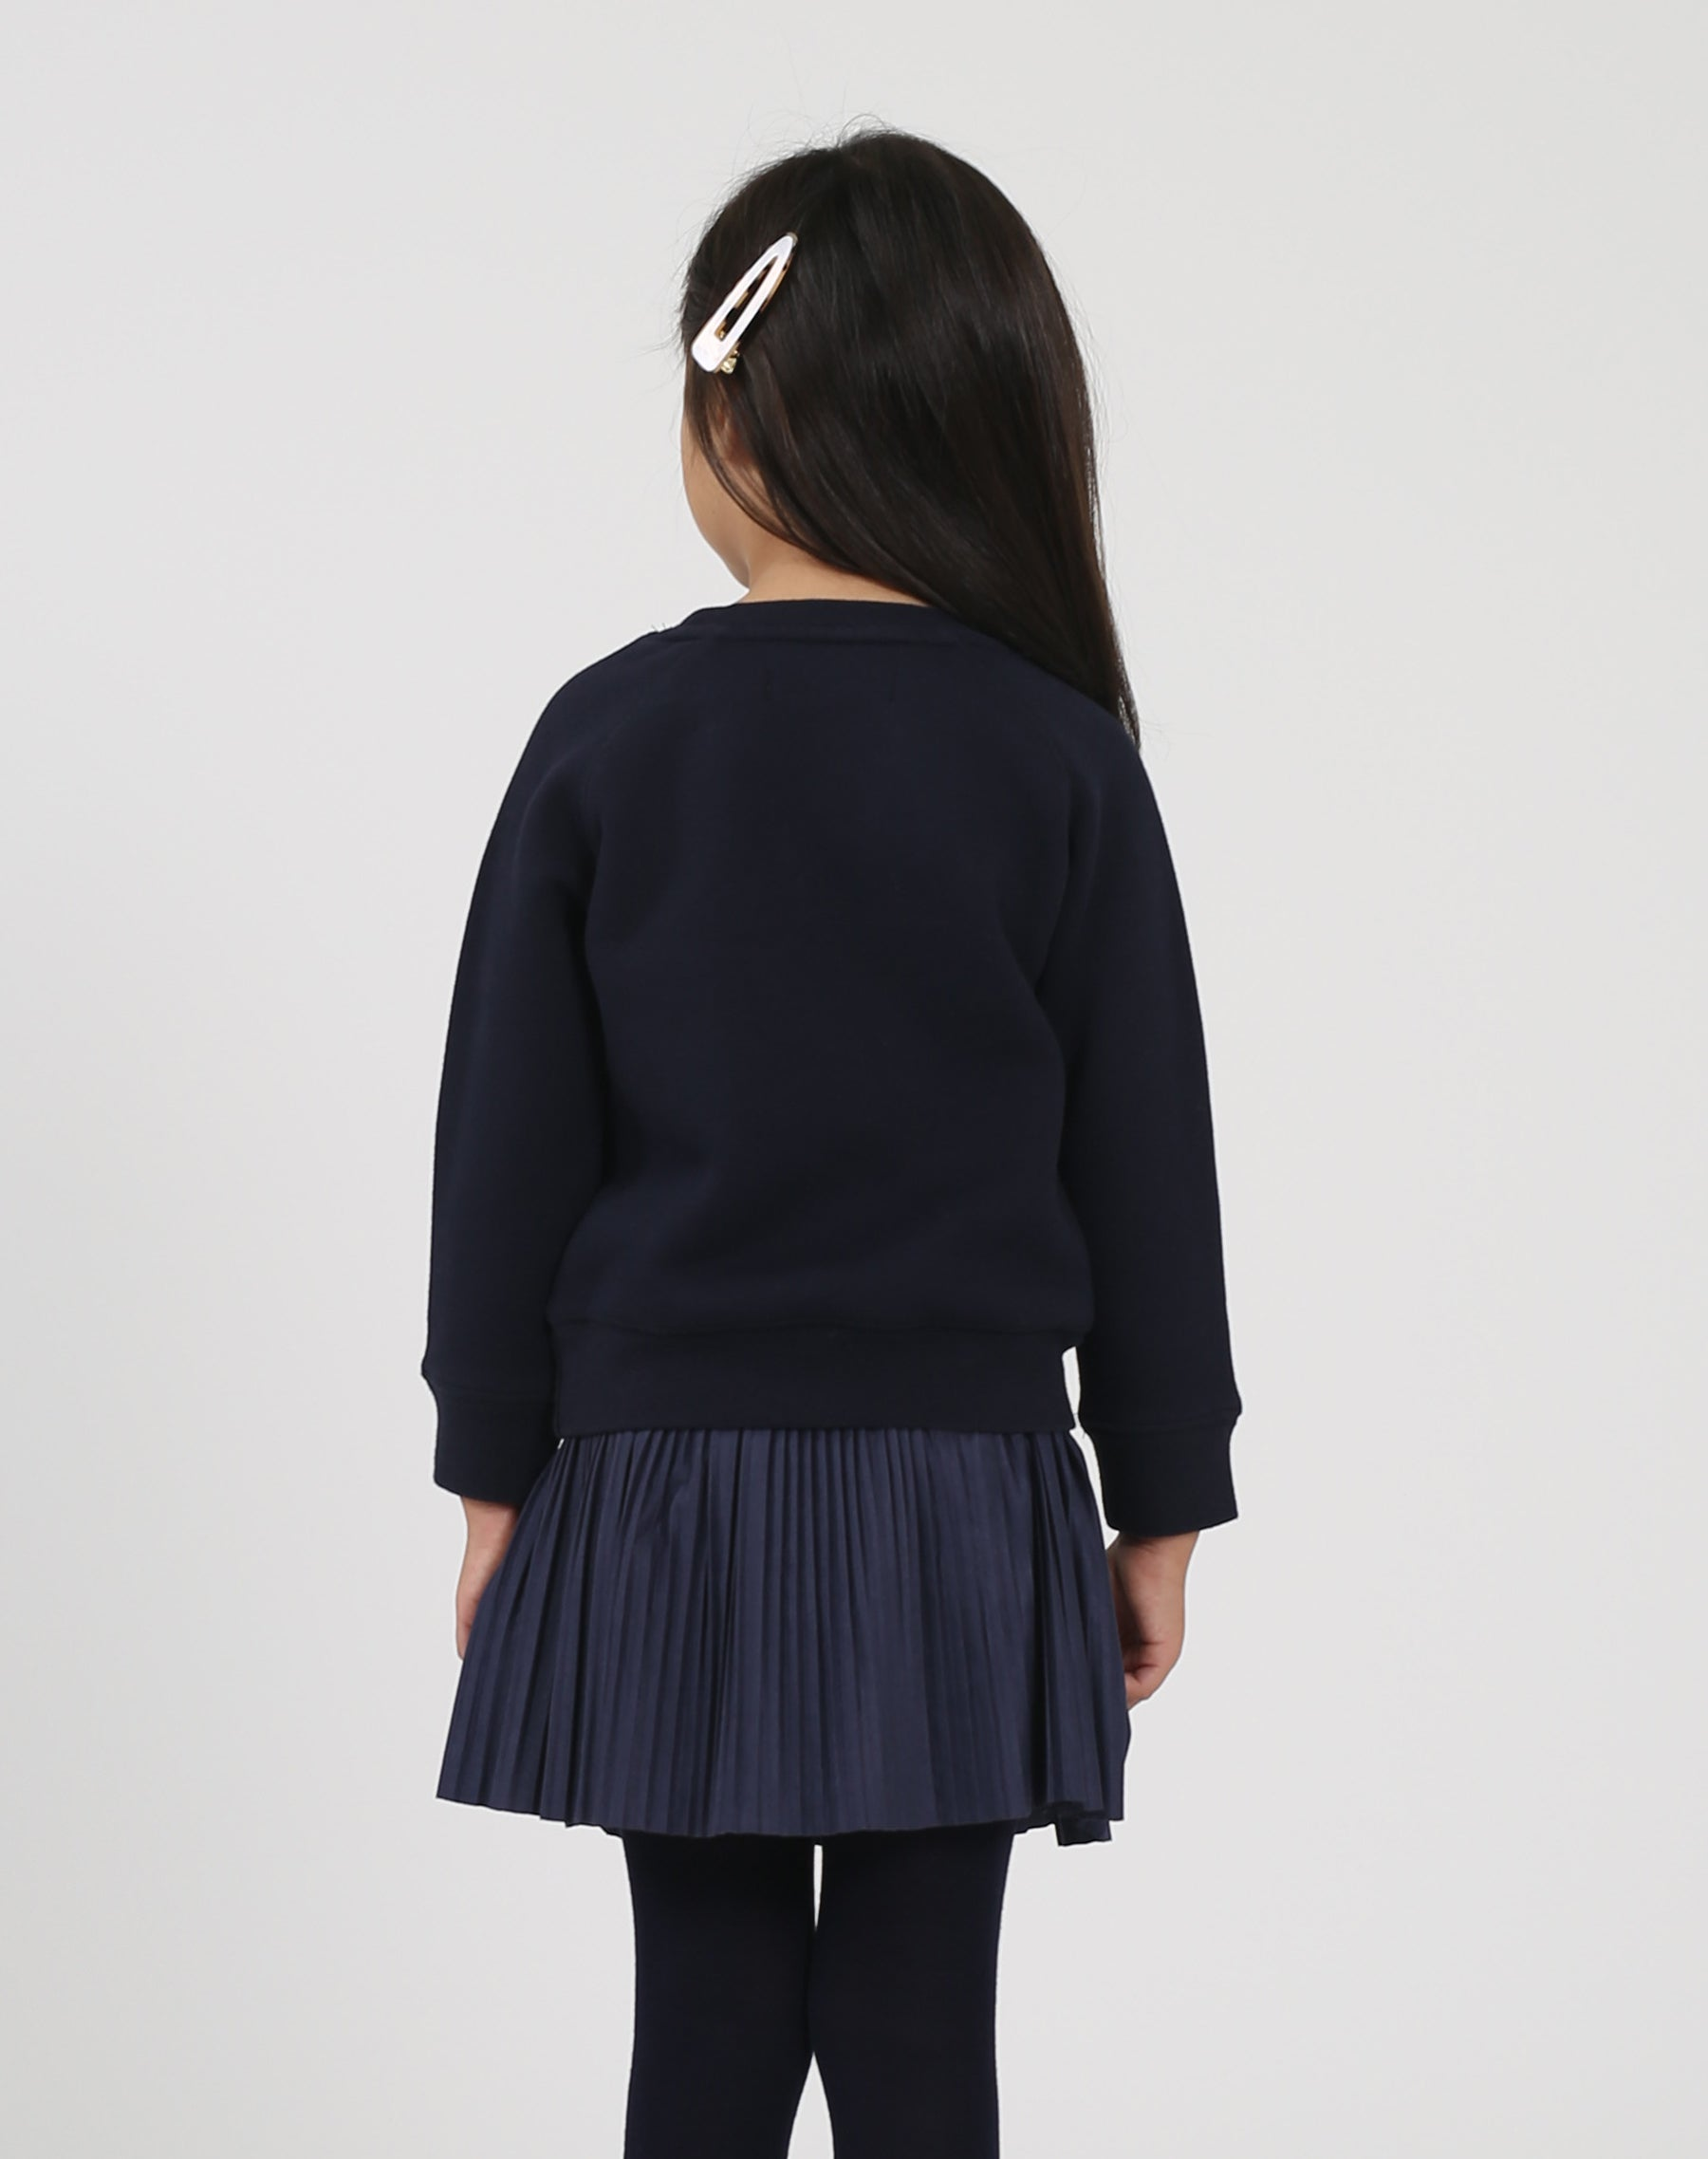 Photo of the back of the Jet Black Little Babes classic crew neck sweatshirt in navy by Brunette the Label.